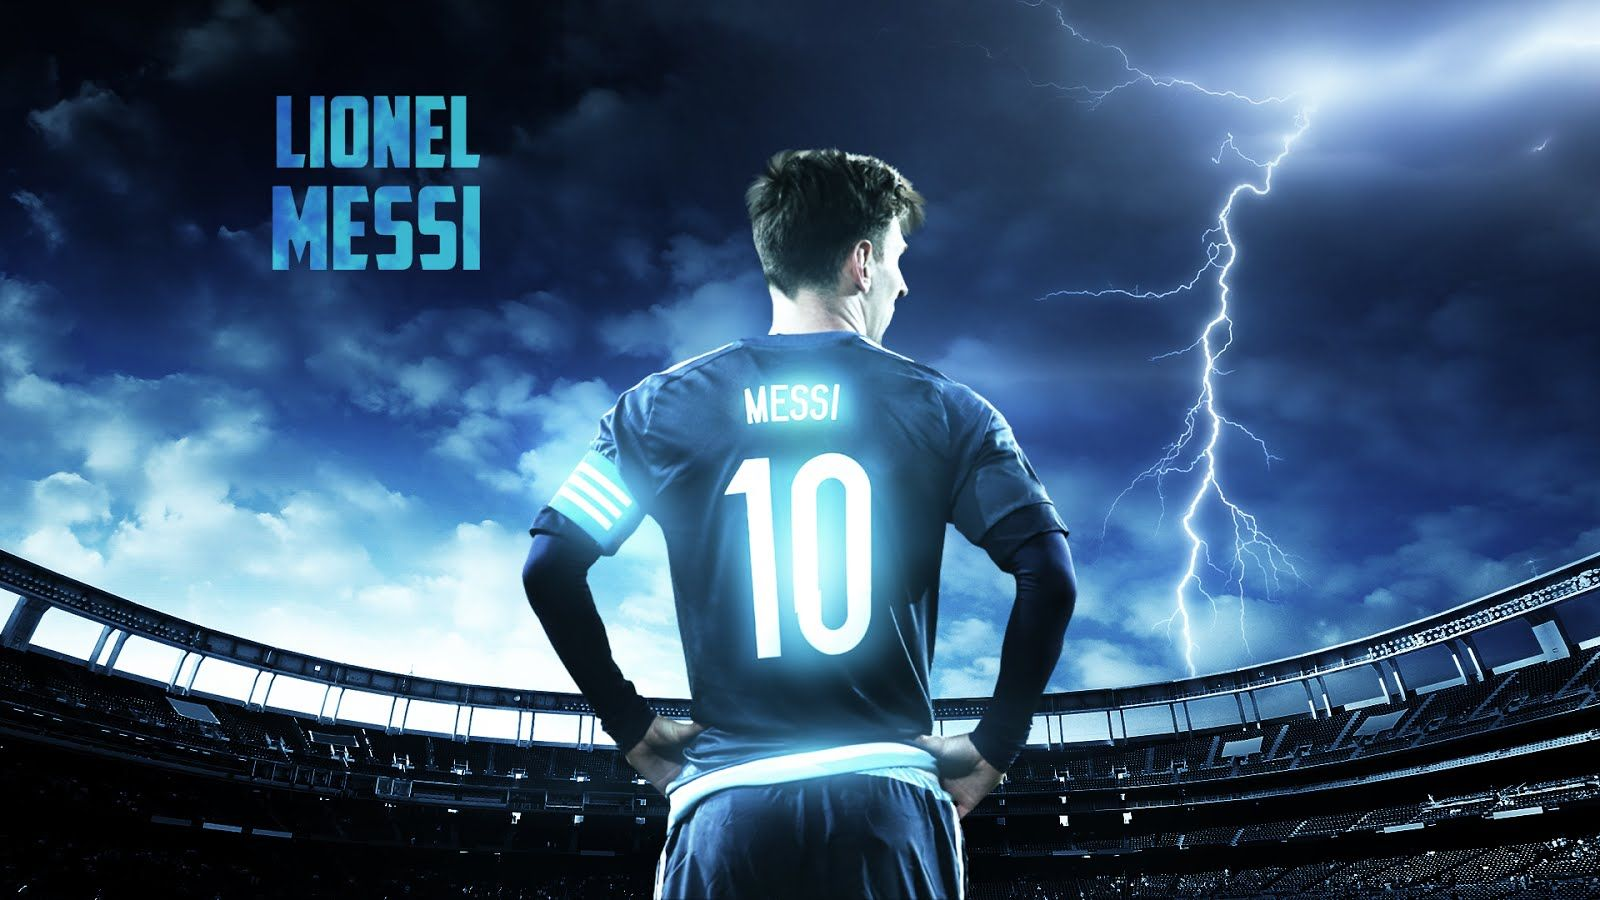 best goal messi wallpapers http://www.4gwallpapers.com/wp-content/uploads/ 2017/01/best-goal-messi-wallpapers-2.jpeg http://www.4gwallpapers.com… |  Pinteres…